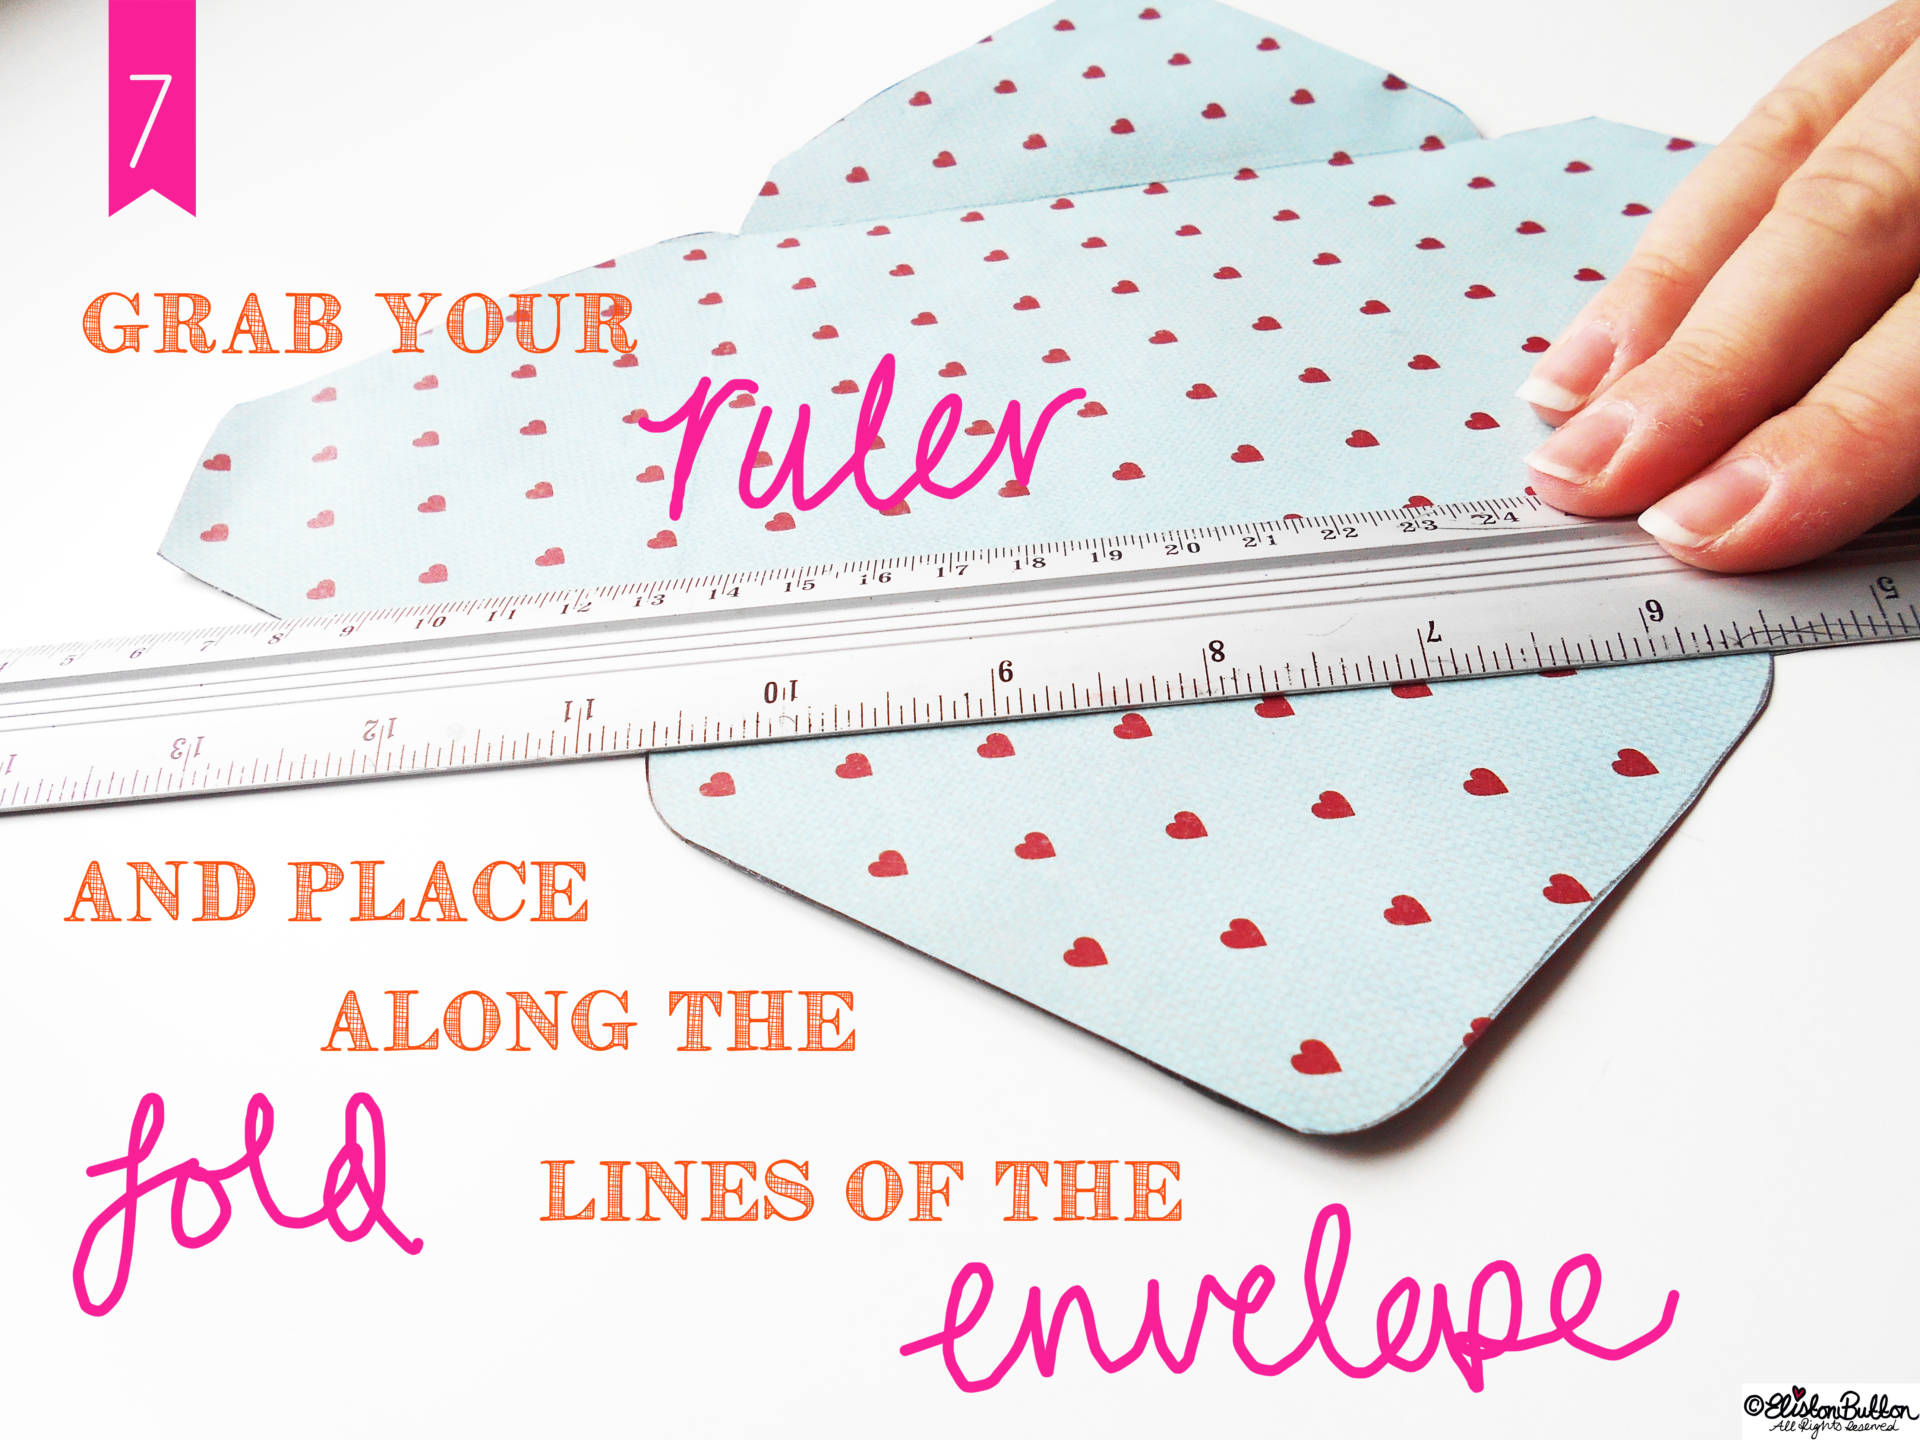 11. Use a Ruler To Score The Edges. - Tutorial Tuesday - Handmade Fancy Envelopes at www.elistonbutton.com - Eliston Button - That Crafty Kid – Art, Design, Craft & Adventure.